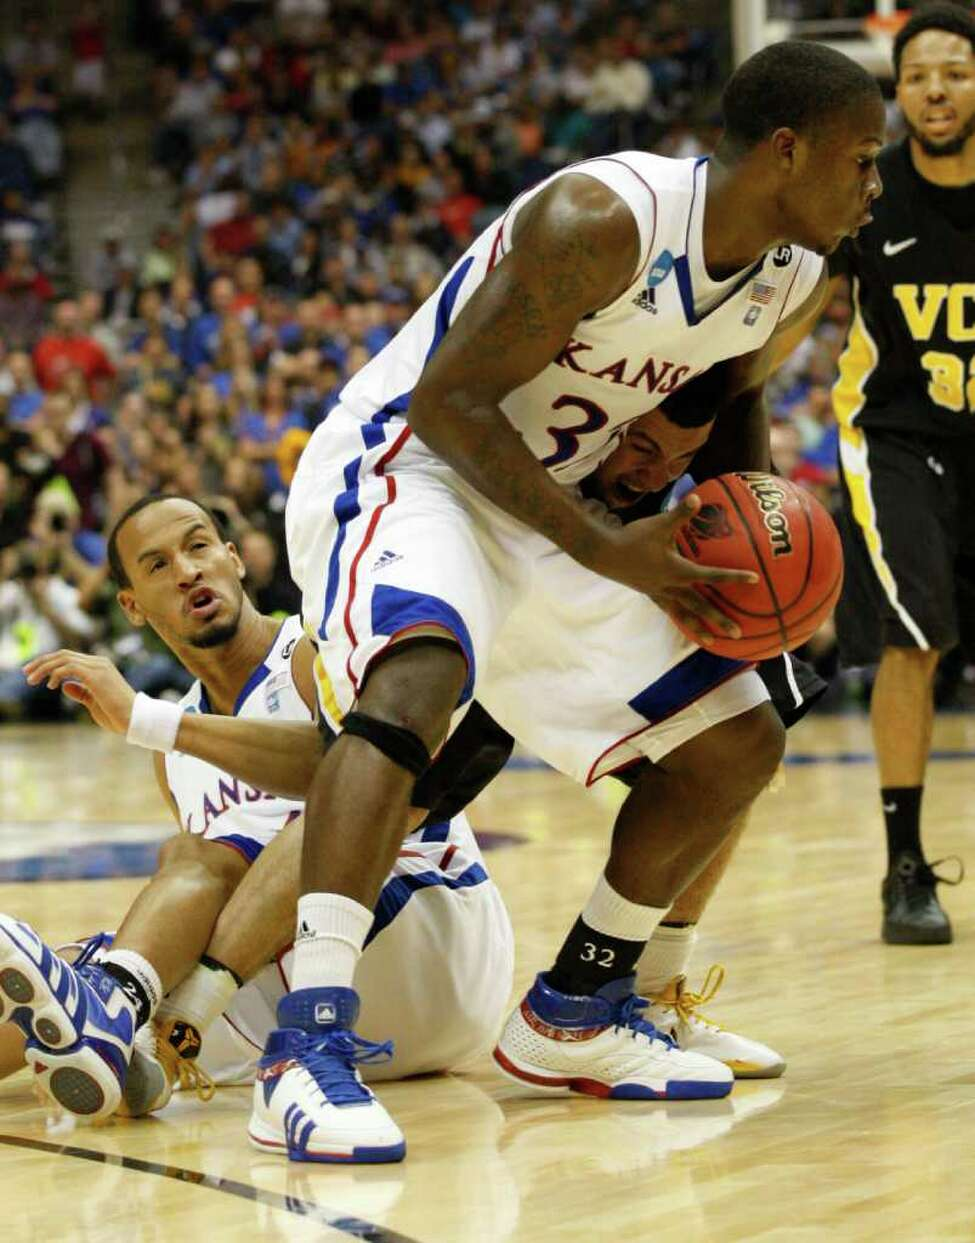 Kansas guard Josh Selby (32) gets tangled up with Virginia Commonwealth guard Joey Rodriguez (12) and Kansas guard Travis Releford (24) during the first half of the NCAA Southwest Regional final in San Antonio, Texas on Sunday, March 27, 2011. (Jerry Lara/glara@express-news.net)